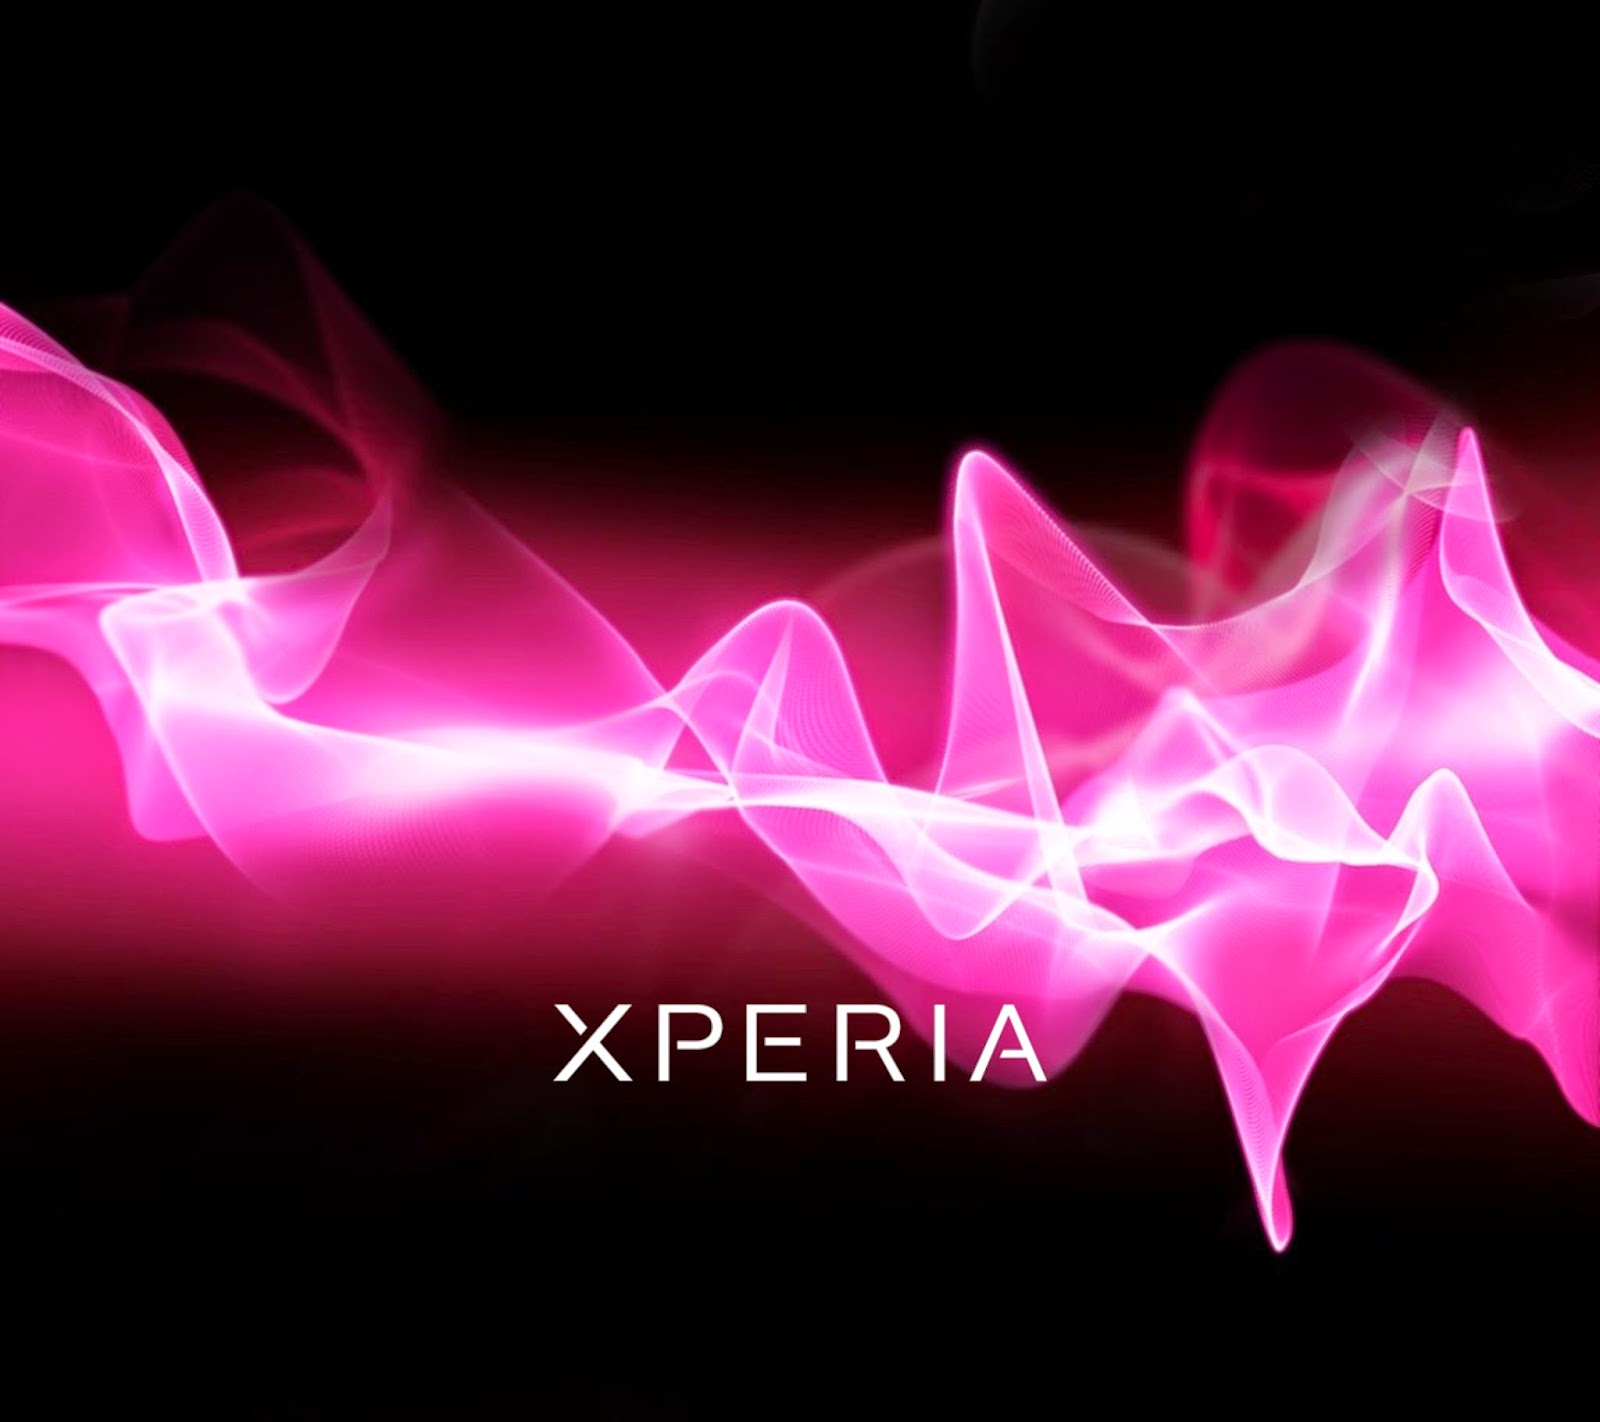 xperia wallpaper hd - photo #5